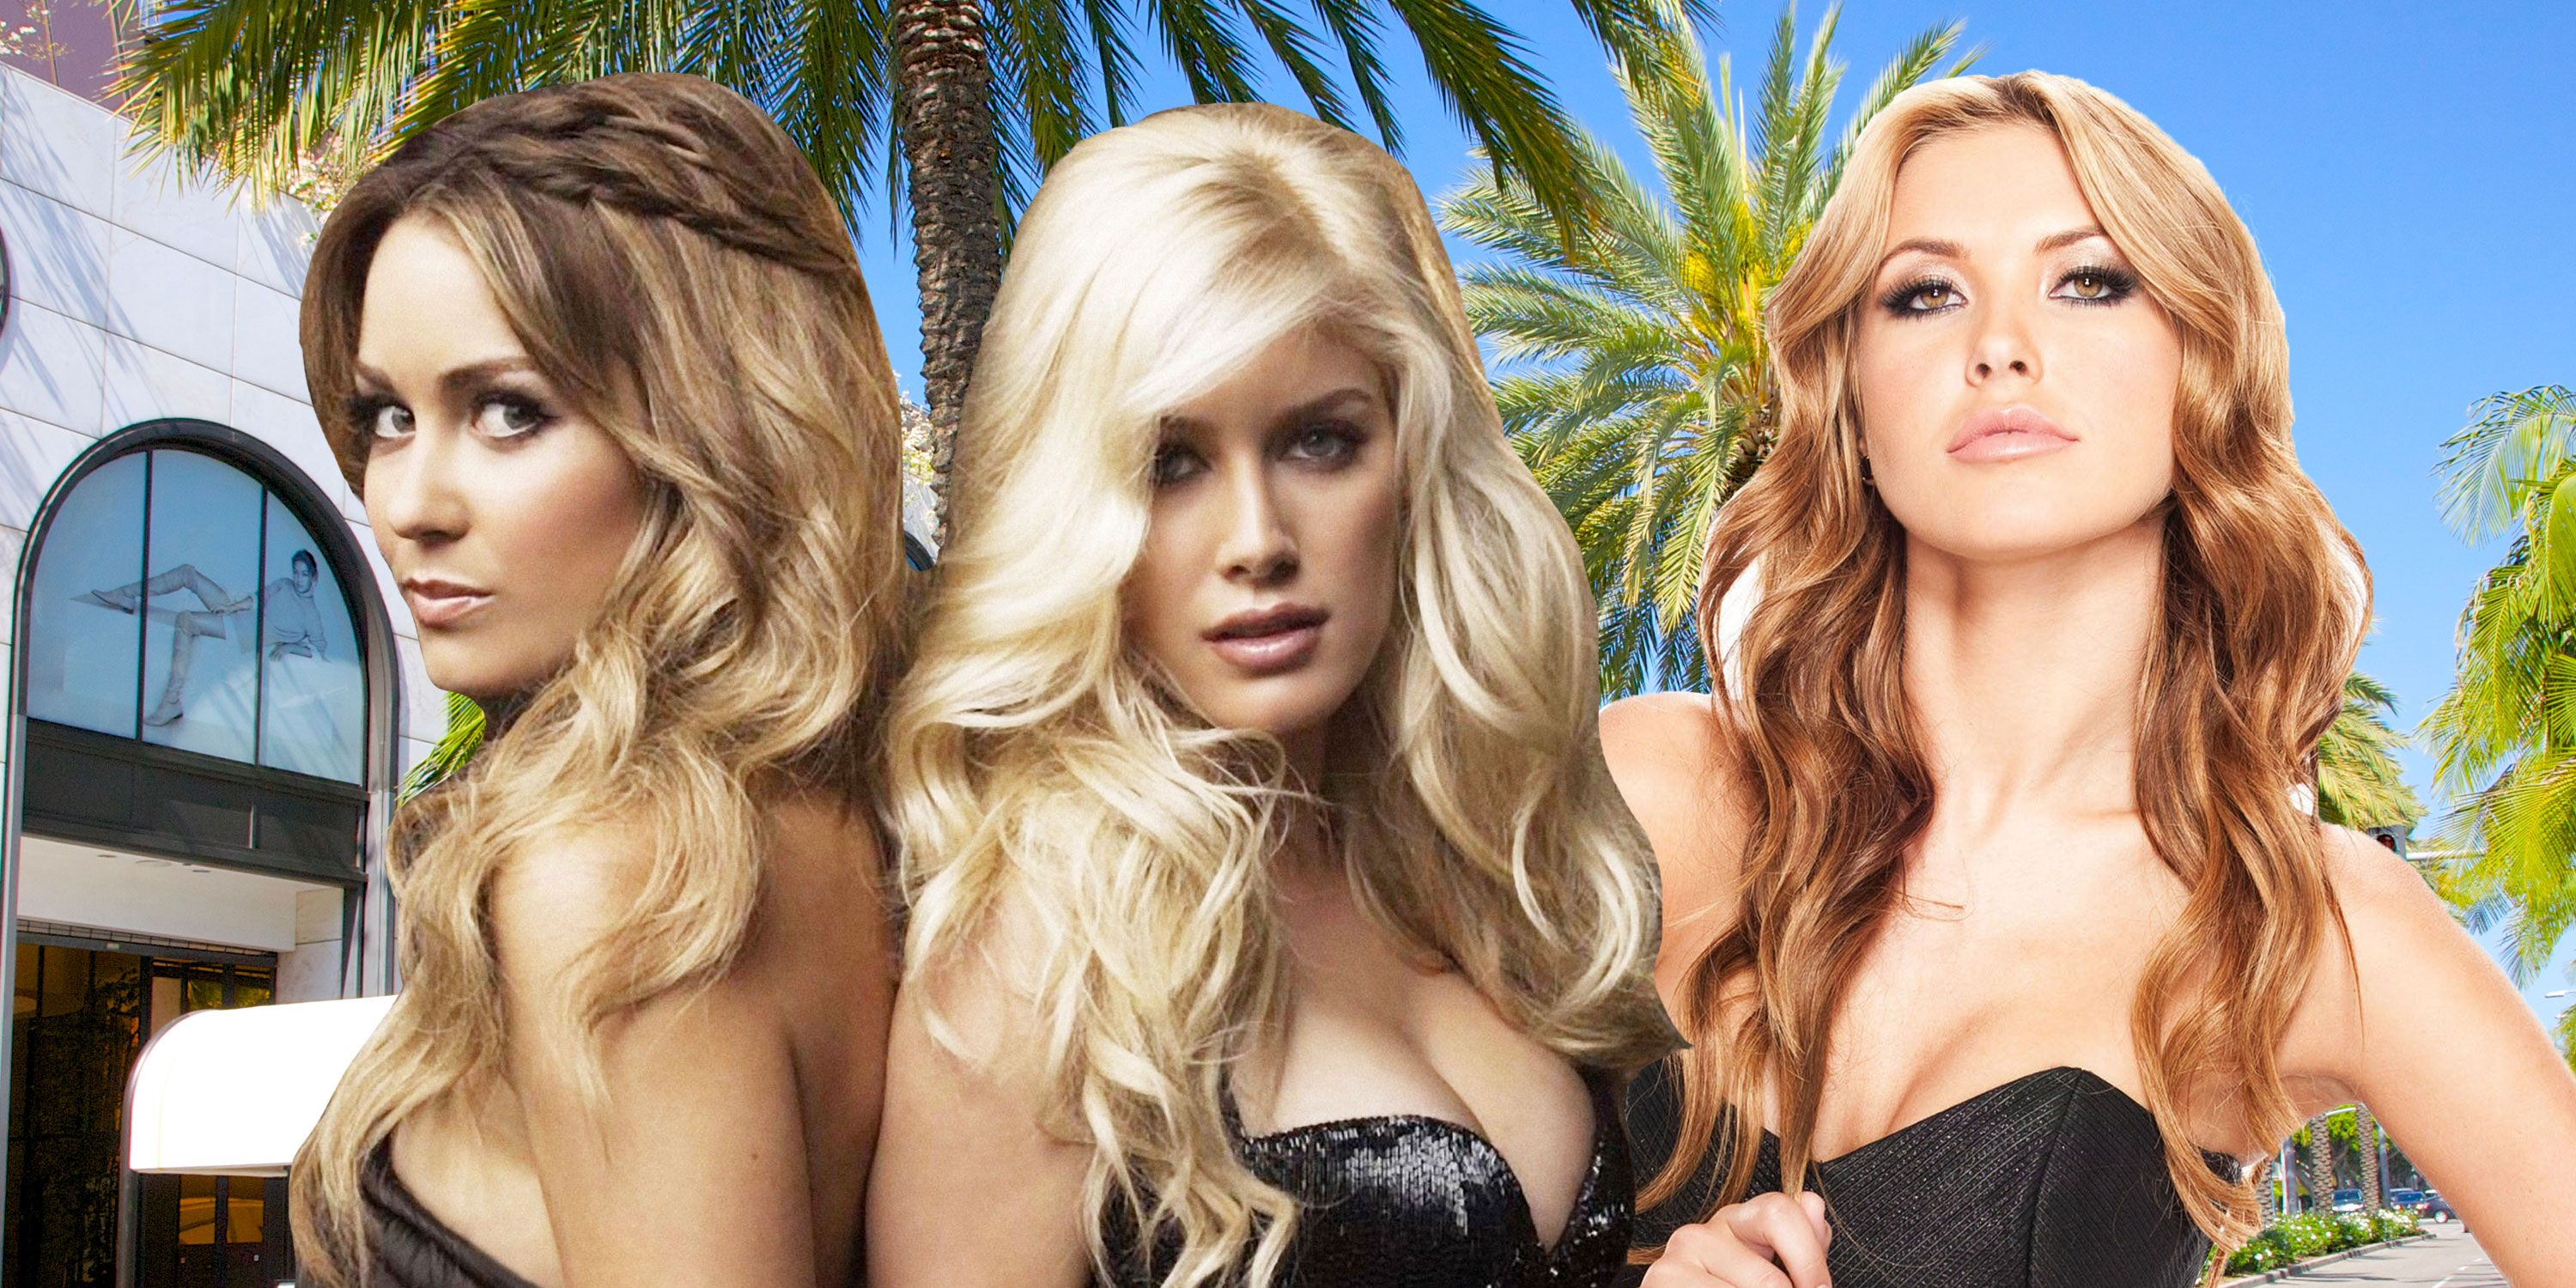 PHOTOSHOP, The Hills, Lauren Conrad, Heidi Montag, Audrina Patridge